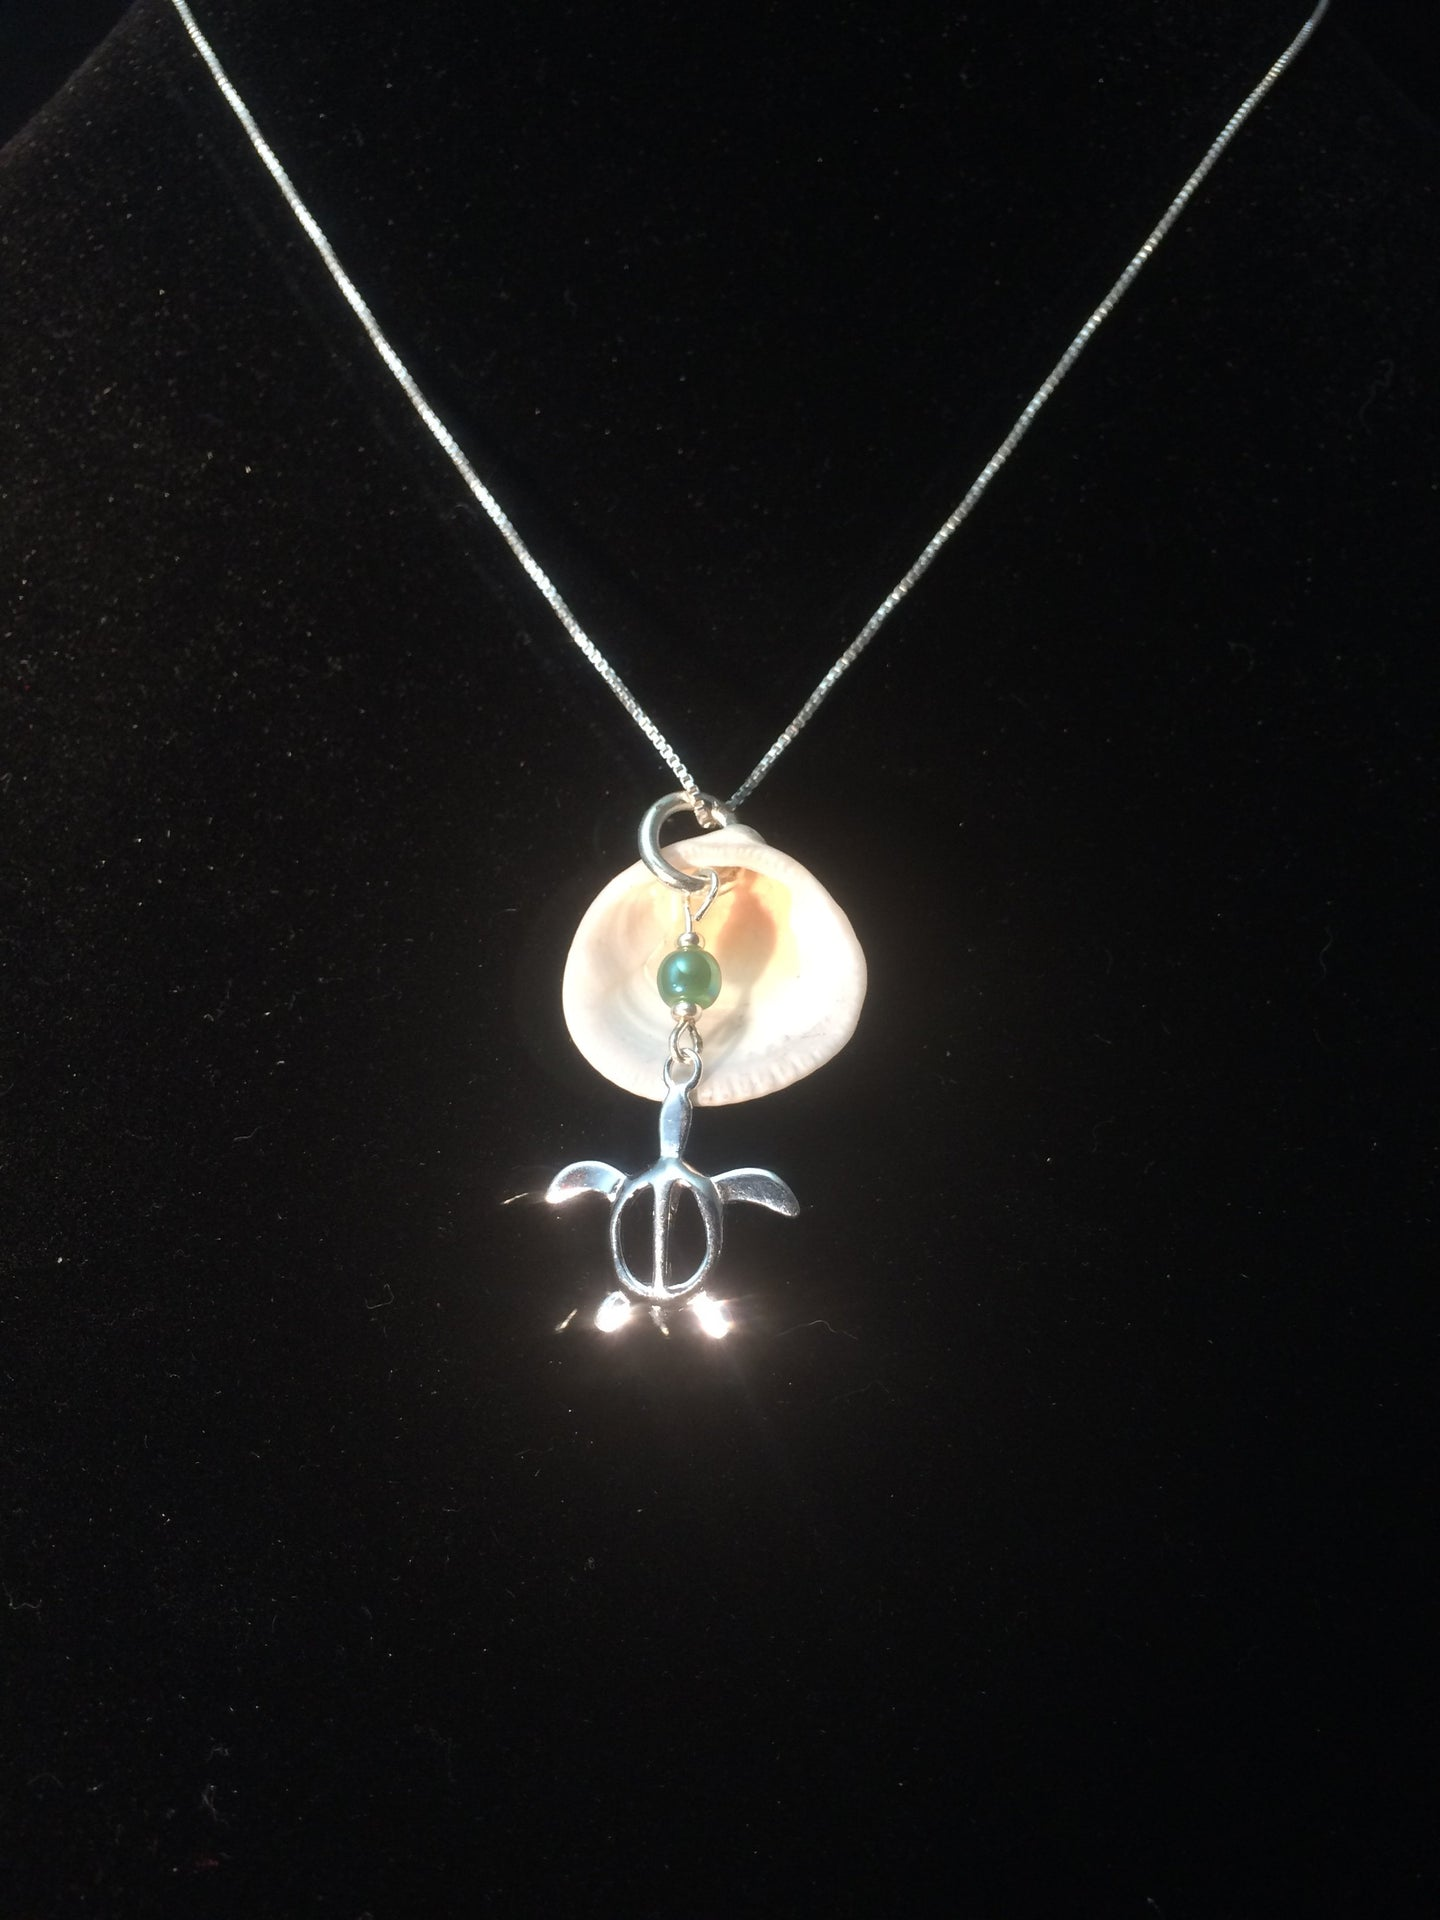 A necklace made from a sterling silver sea turtle charm along with a real clam shell background and a glass bead accent, mounted on an 18